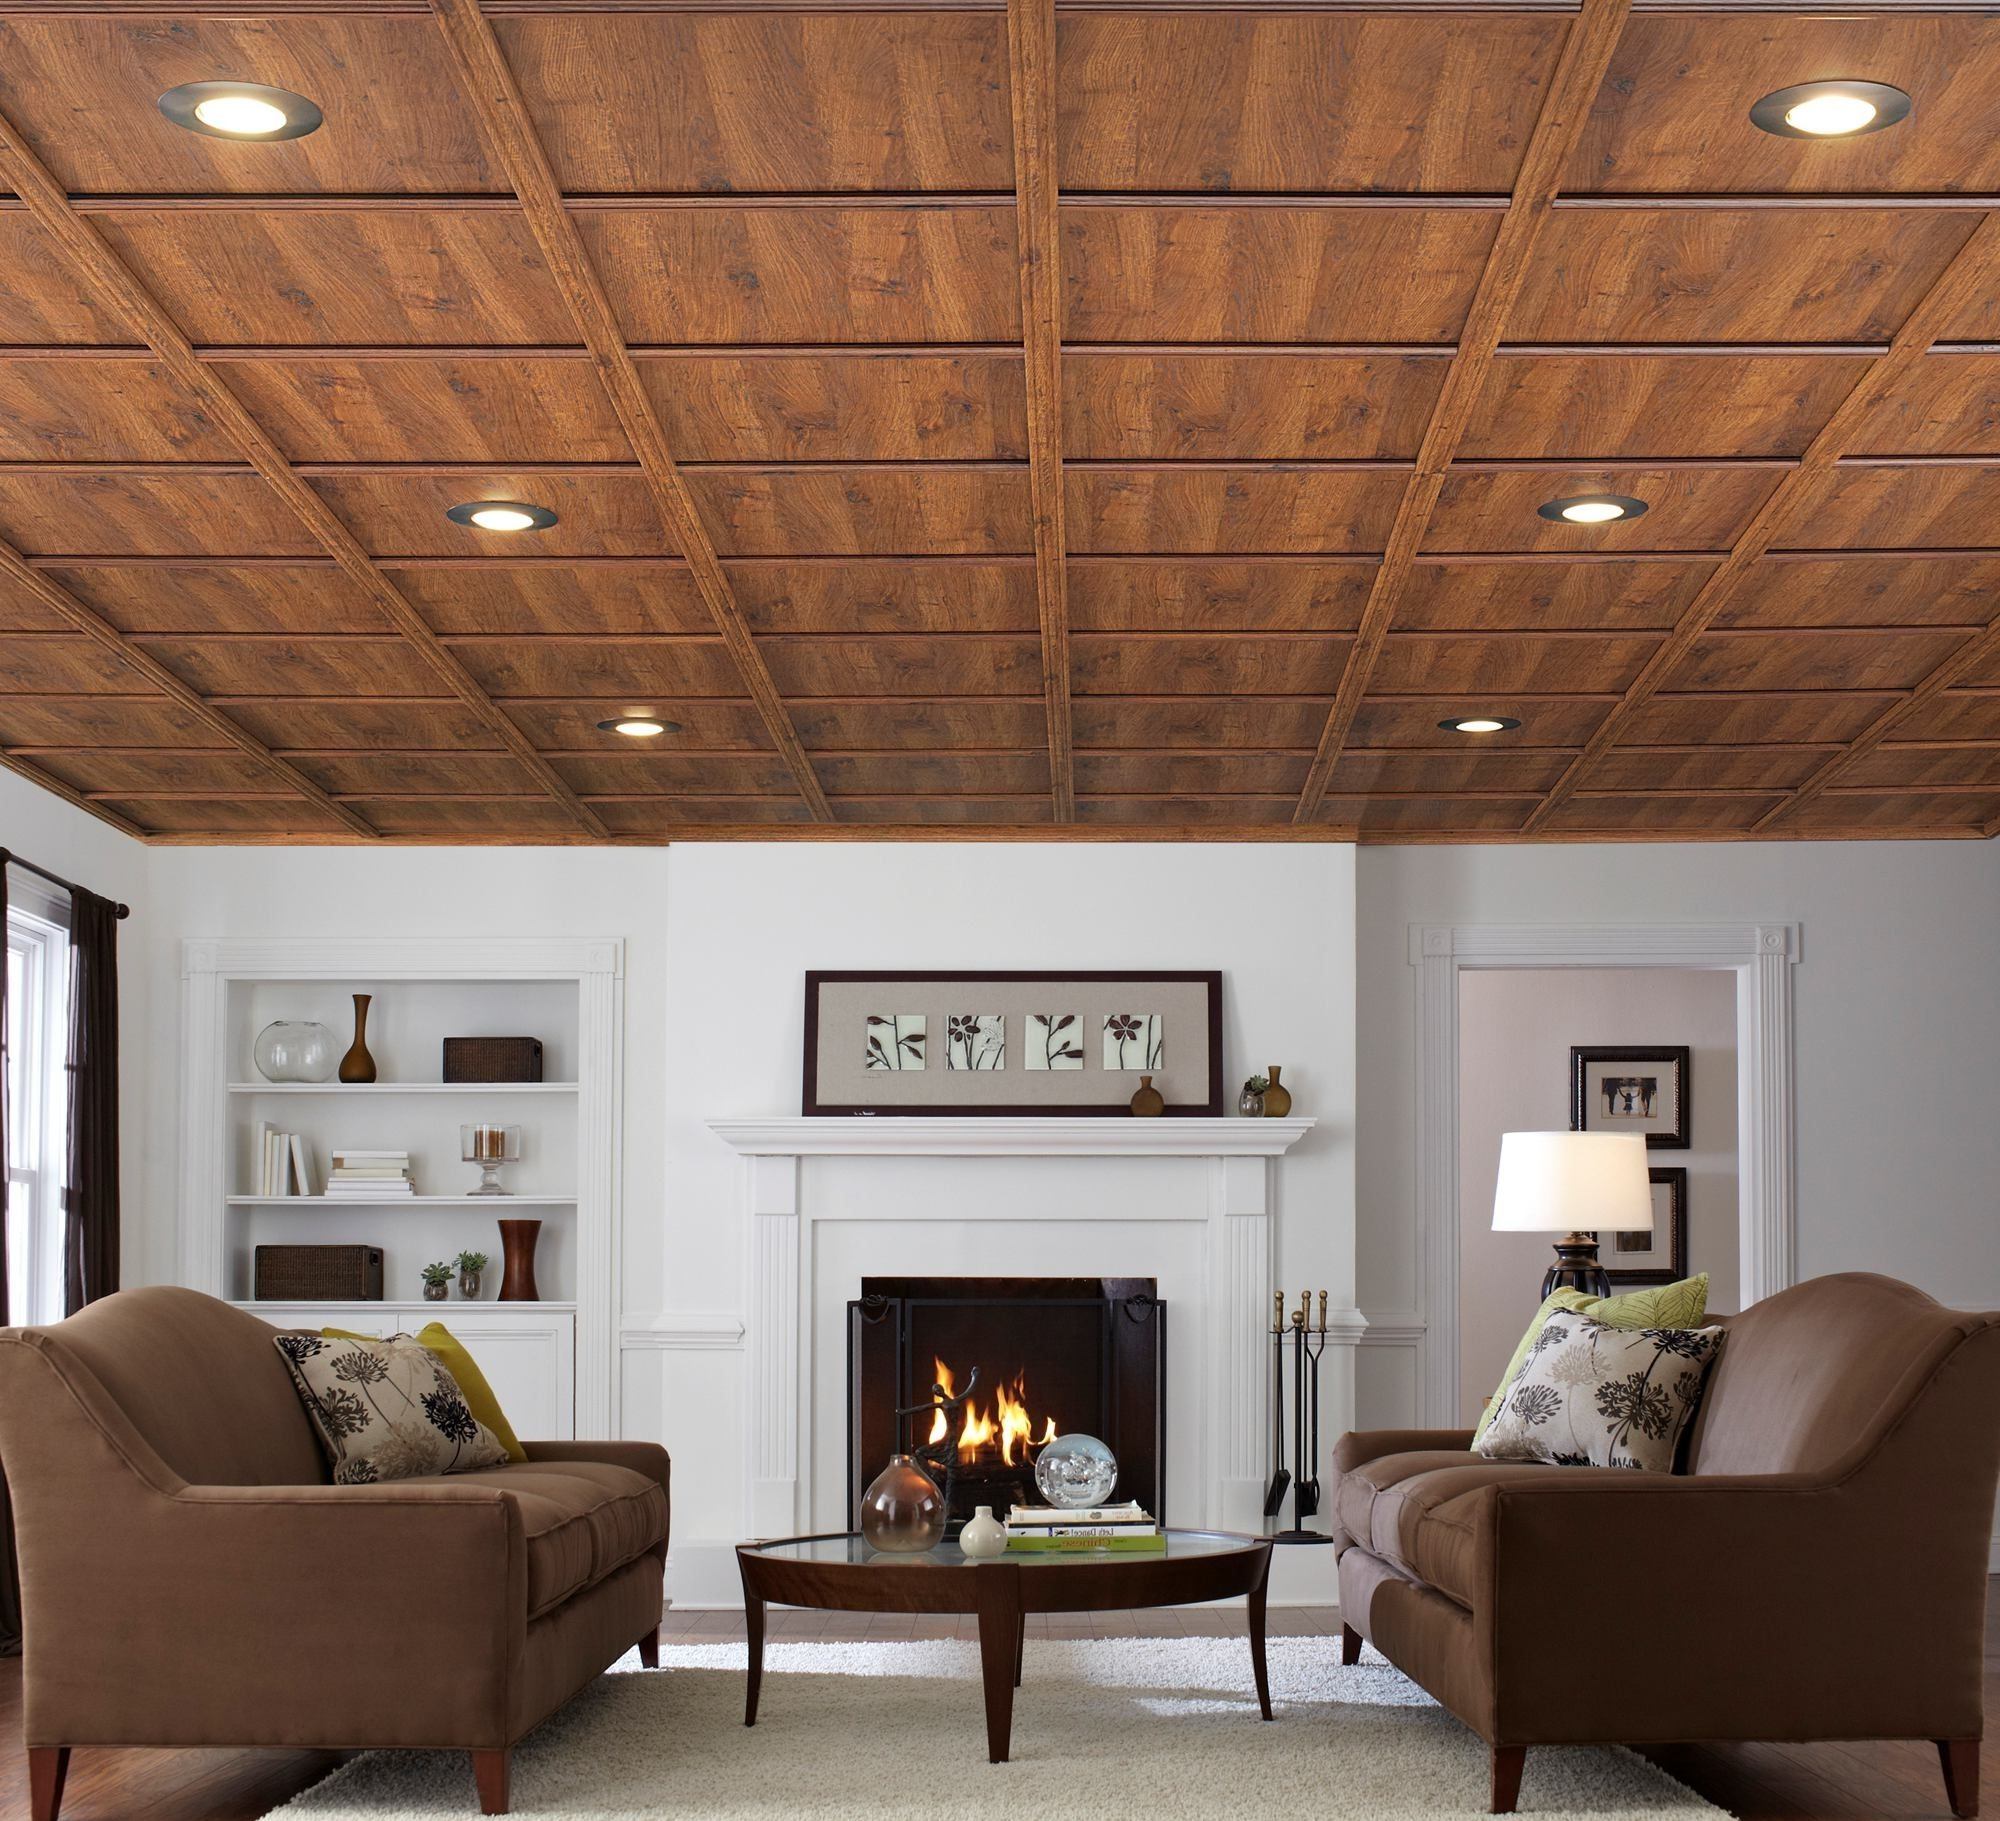 design leather gray neutral moore ceilings wood kylie the colours best ceiling with plank couch m tobacco planks benjamin and brown pashmina paint beige vaulted e affinity